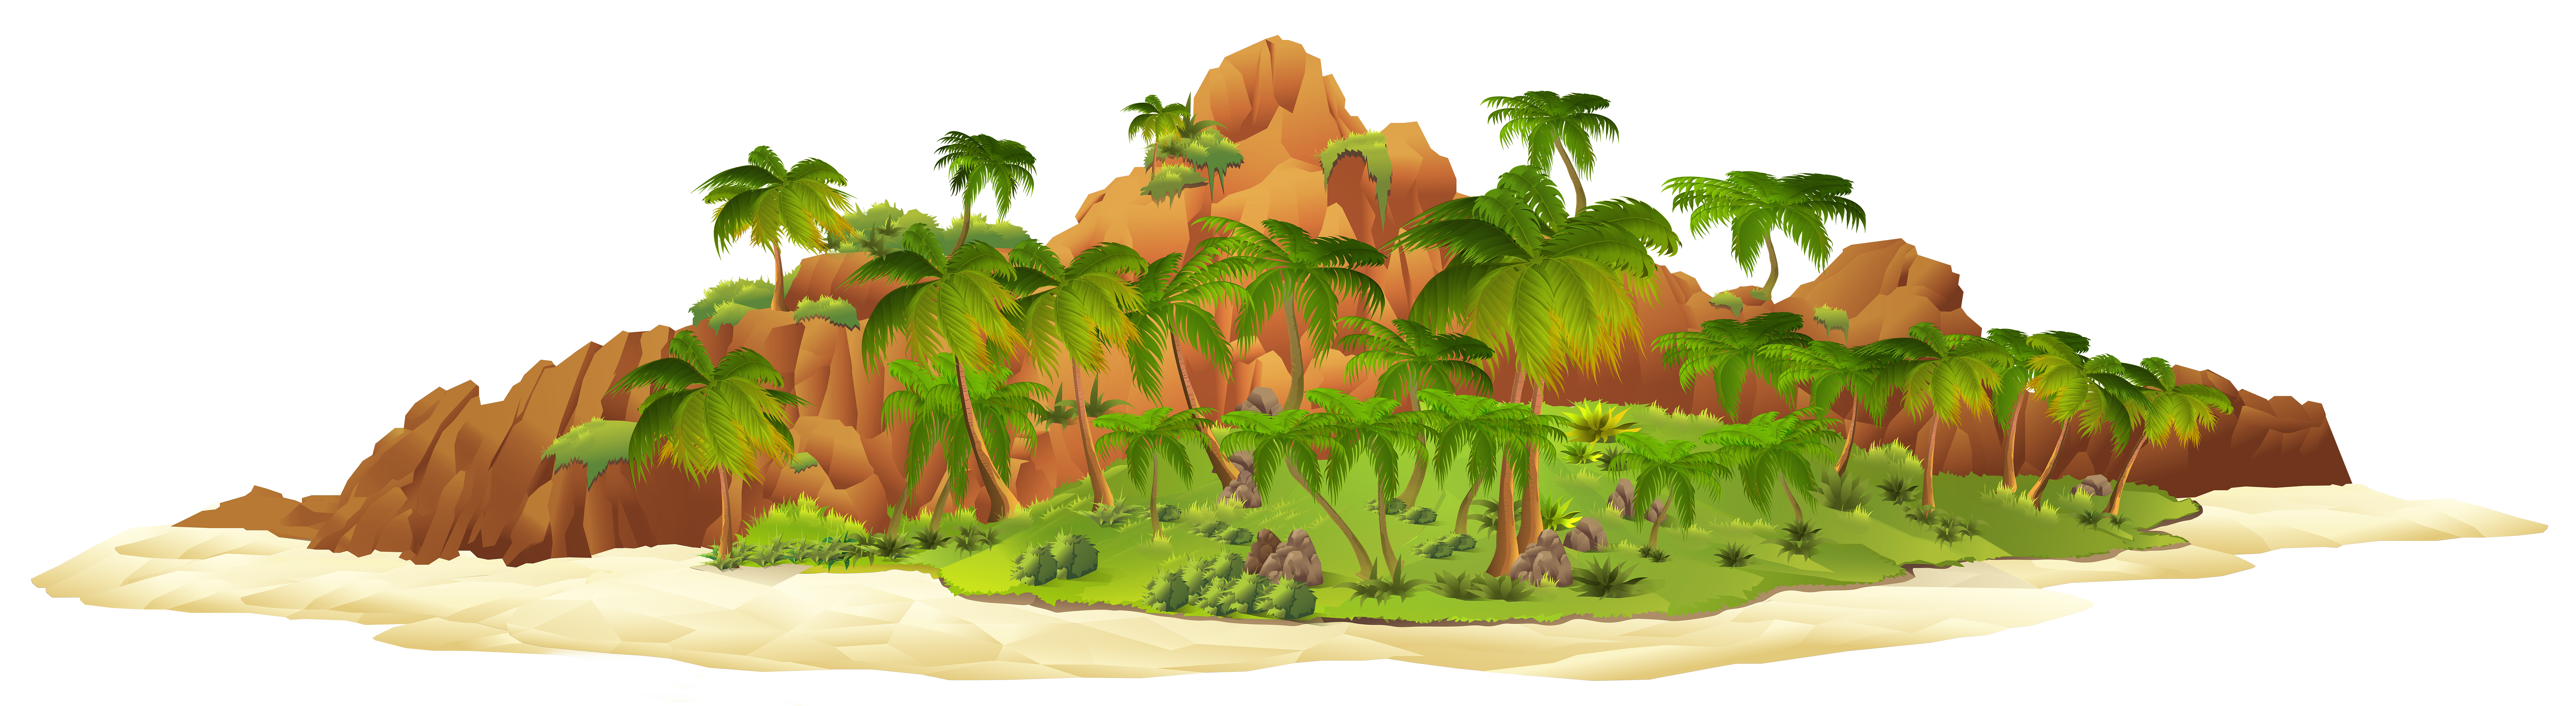 Island Free Download Transparent